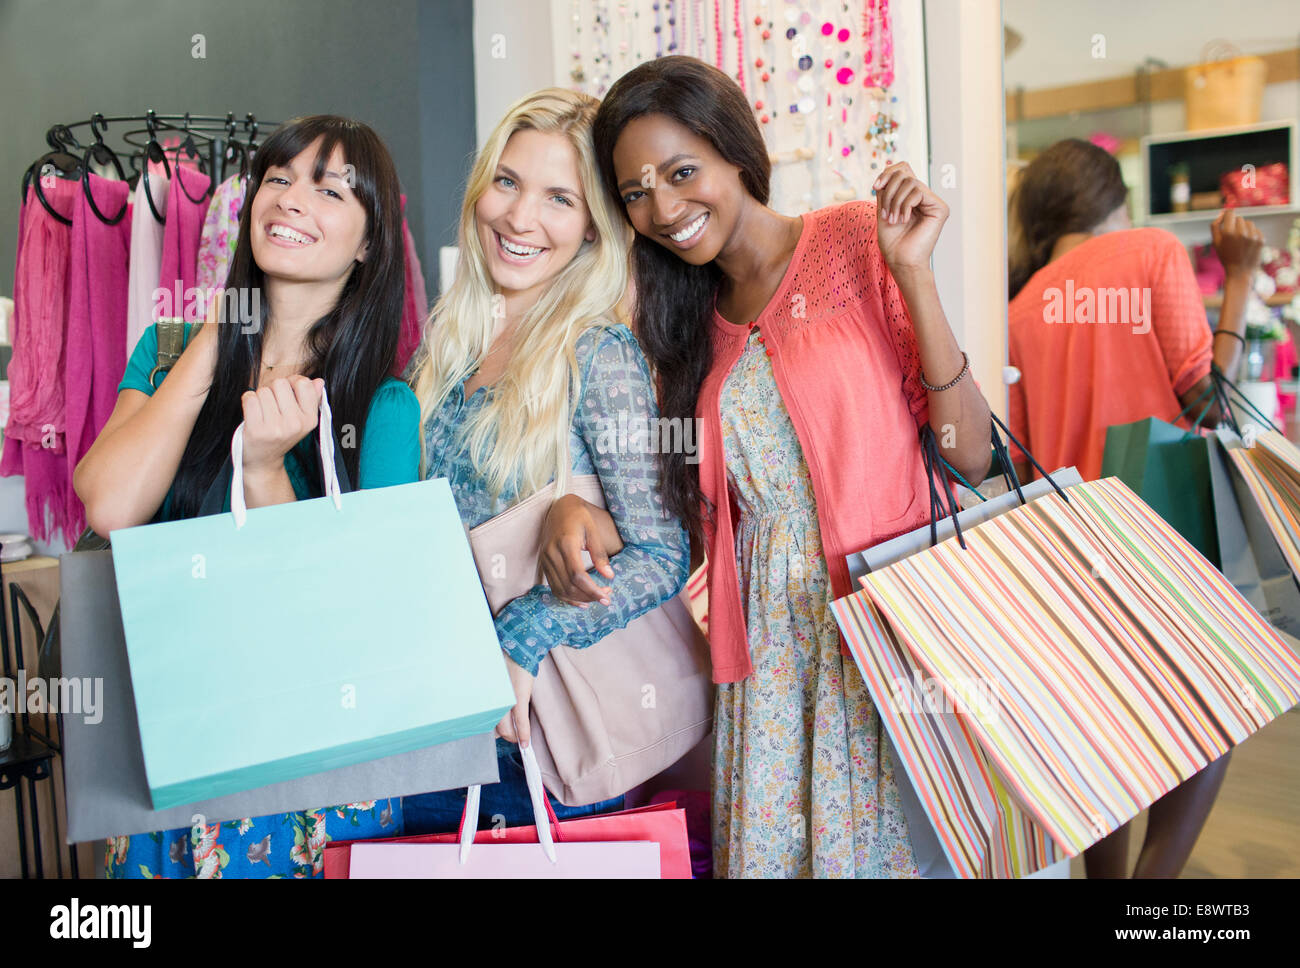 8d01f931da Women shopping together in clothing store Stock Photo: 74326647 - Alamy